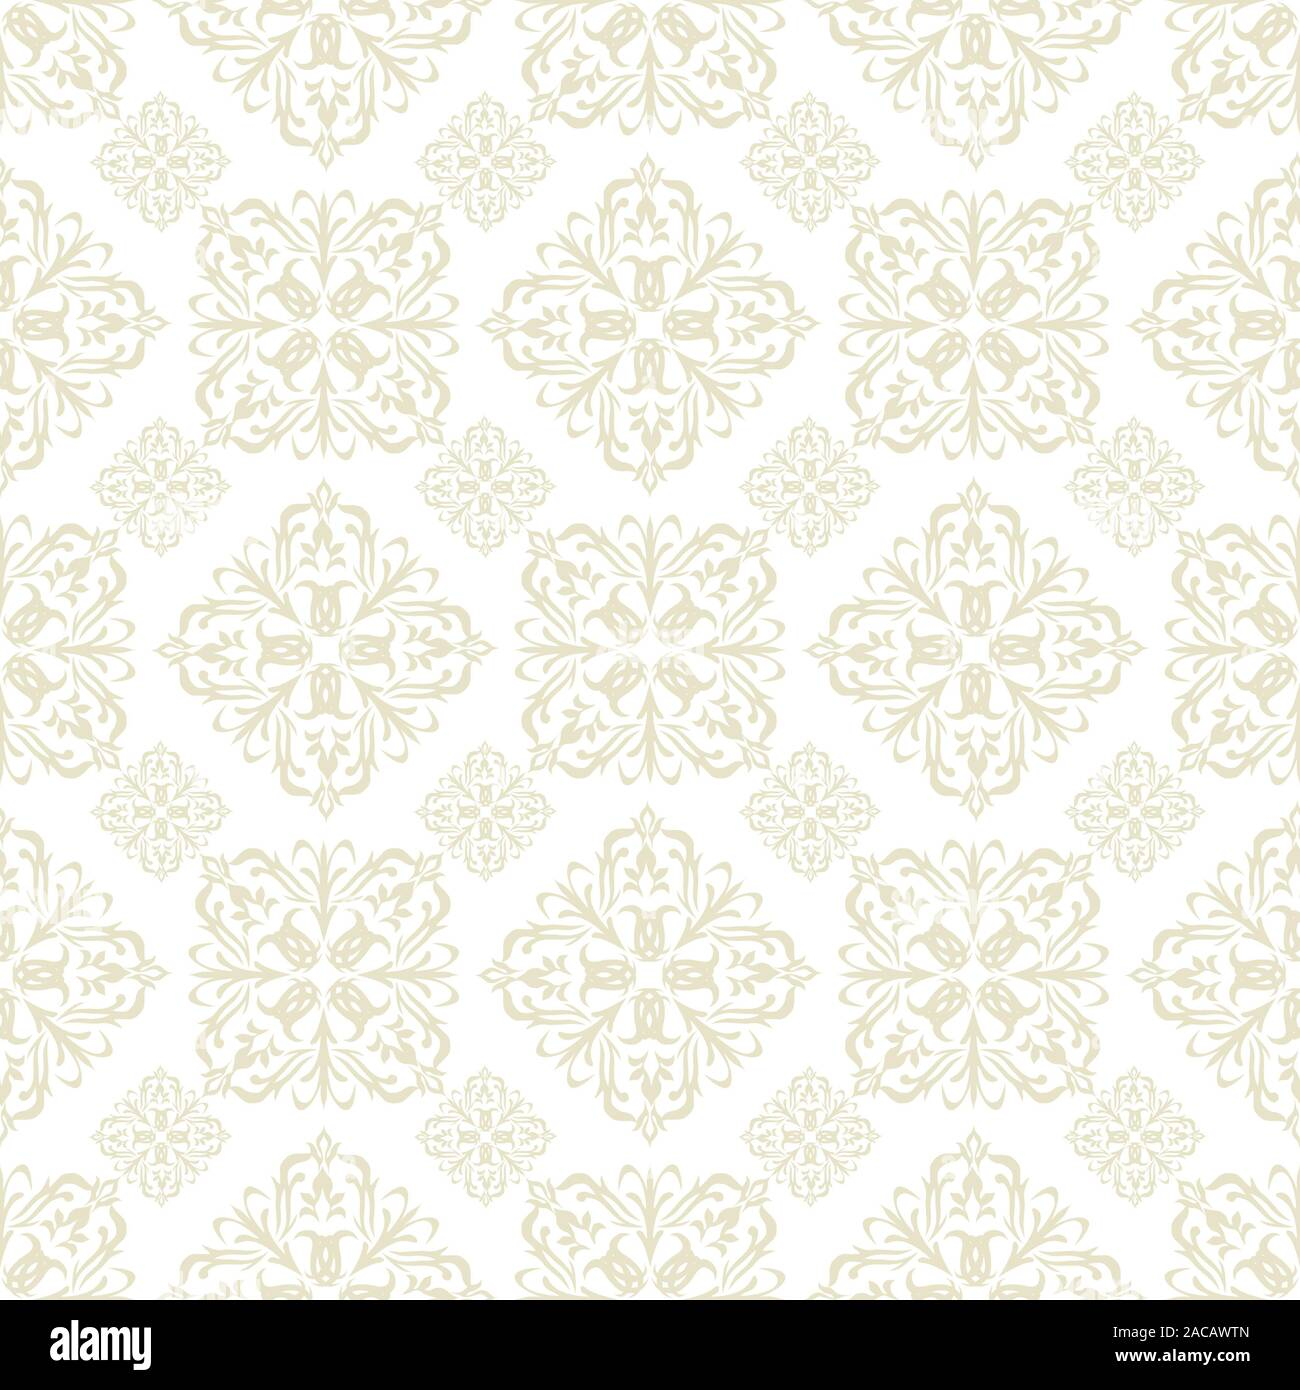 Floral Wallpaper Beige Tile Stock Photo 334612677 Alamy